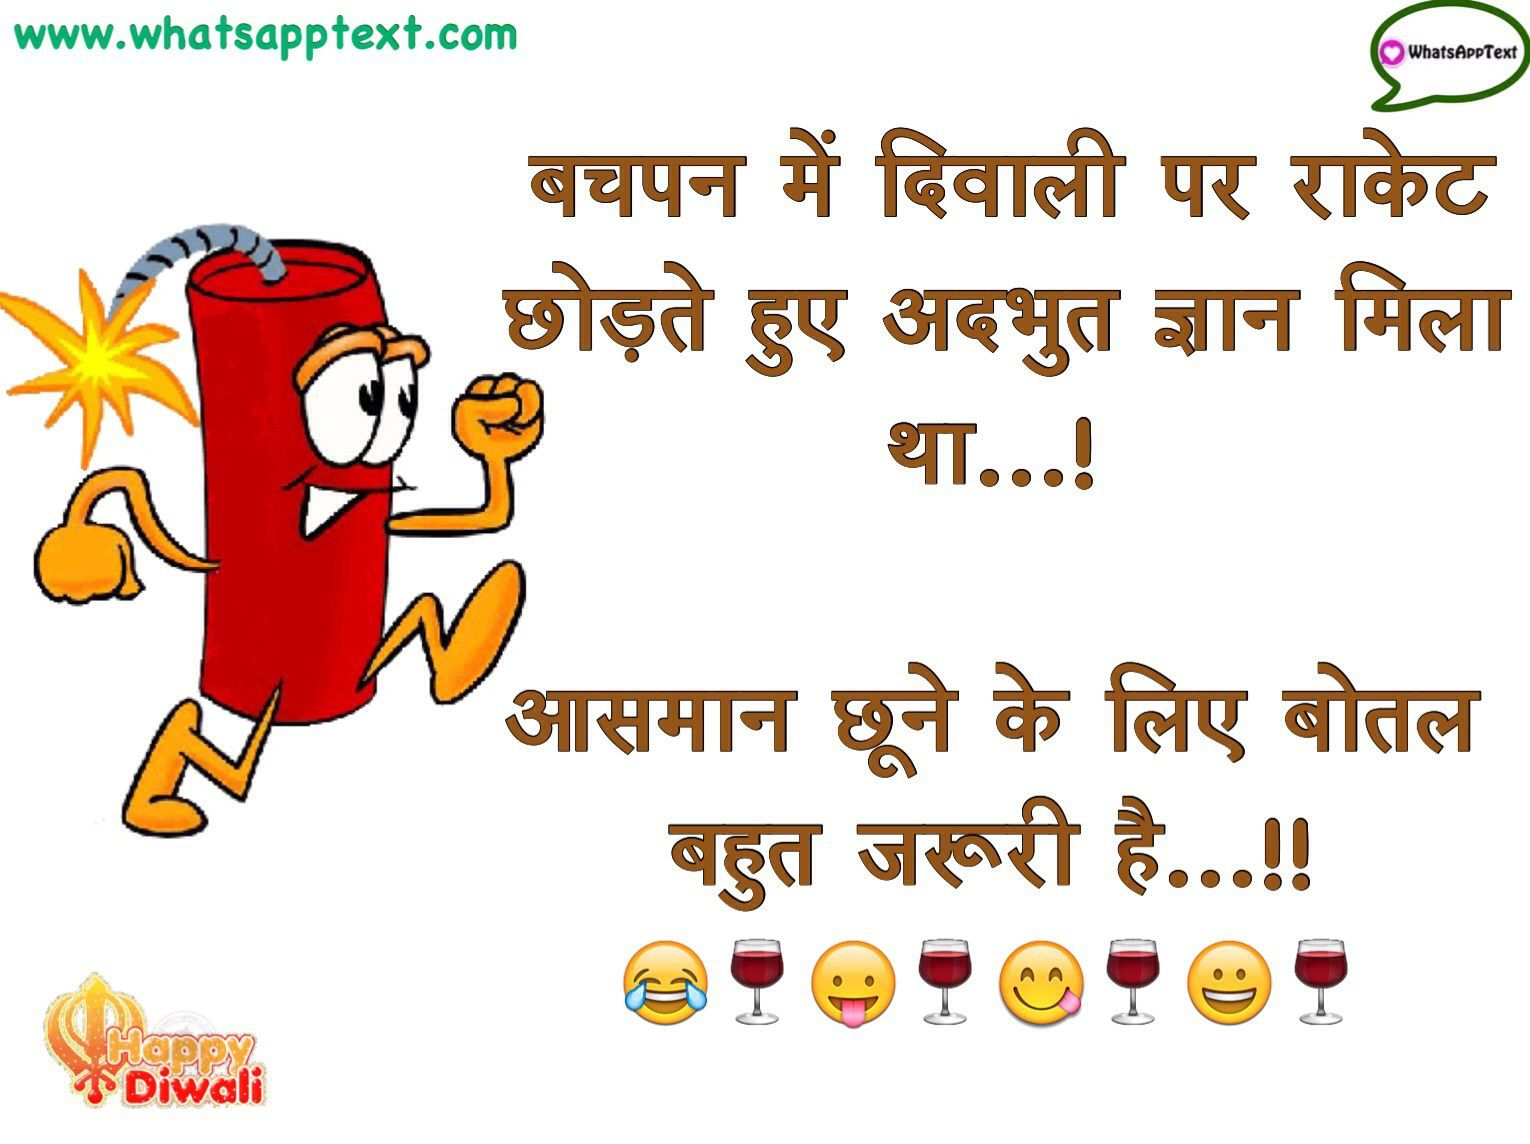 Funny diwali sms for rocket bottle happy diwali new year funny best funny diwali messages and jokes images whatsapp text m4hsunfo